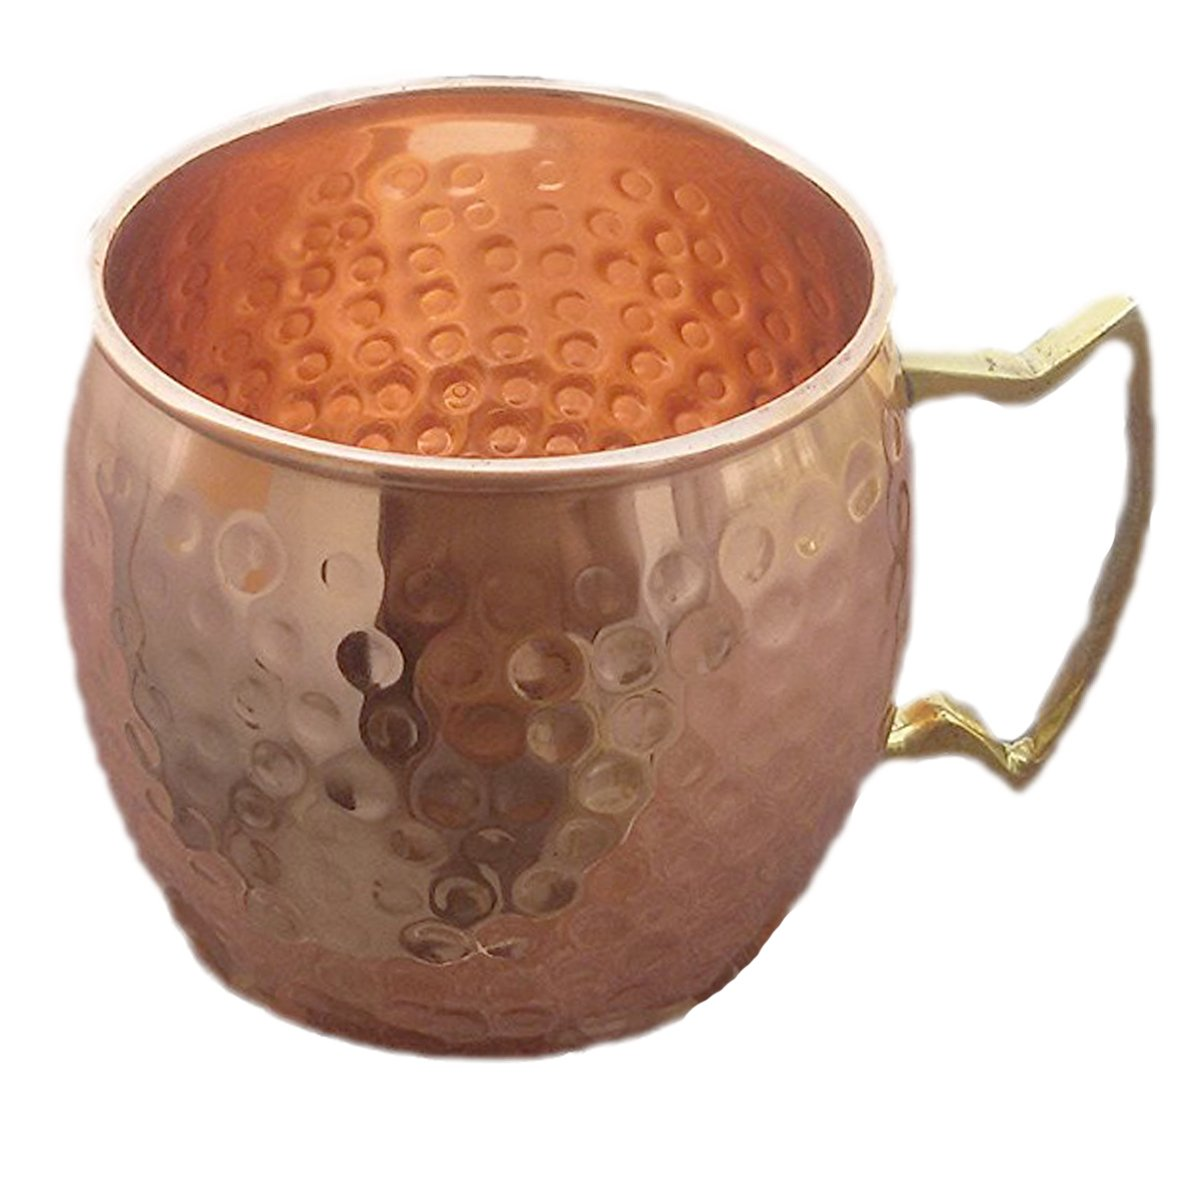 PARIJAT HANDICRAFT Handcrafted Moscow Mules Copper Mugs 100/% Pure Copper Solid Moscow Mule Mug 24 Ounce Extra Large Size No Lining Hammered Finish with Brass handle 8V-PYAN-YRE0